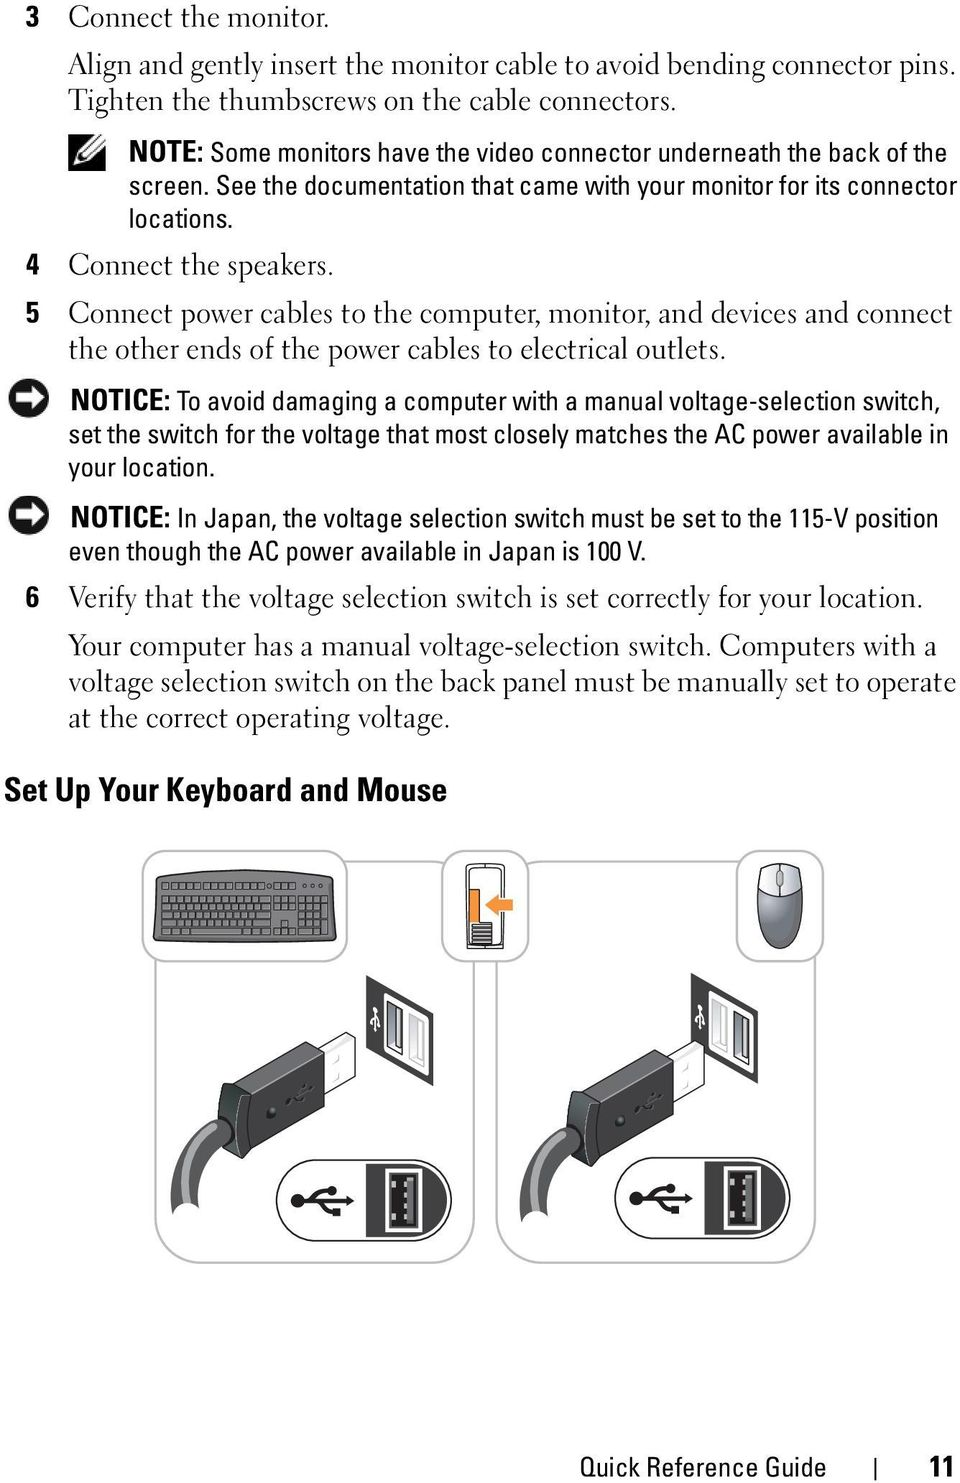 5 Connect power cables to the computer, monitor, and devices and connect the other ends of the power cables to electrical outlets.